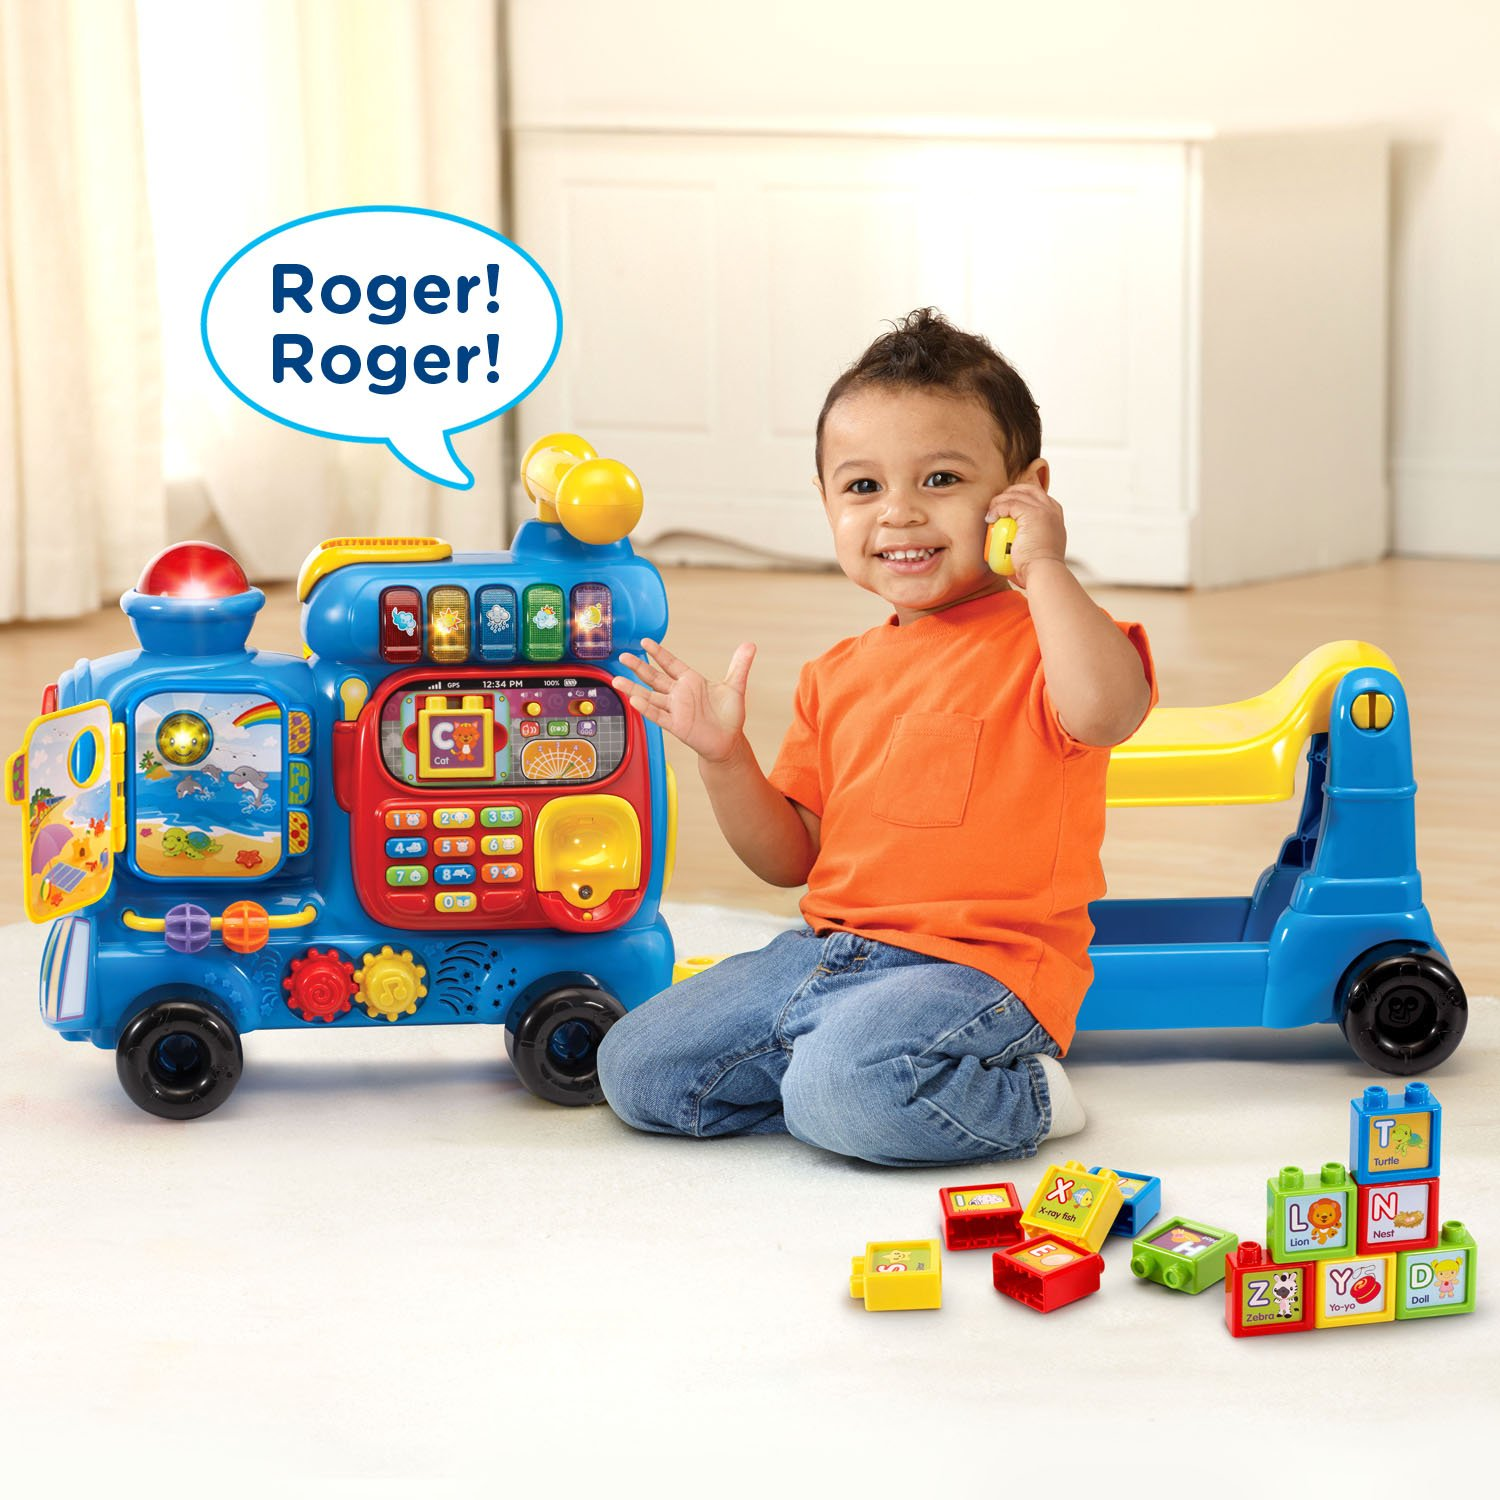 VTech Sit-to-Stand Ultimate Alphabet Train Amazon Exclusive, Blue by VTech (Image #5)